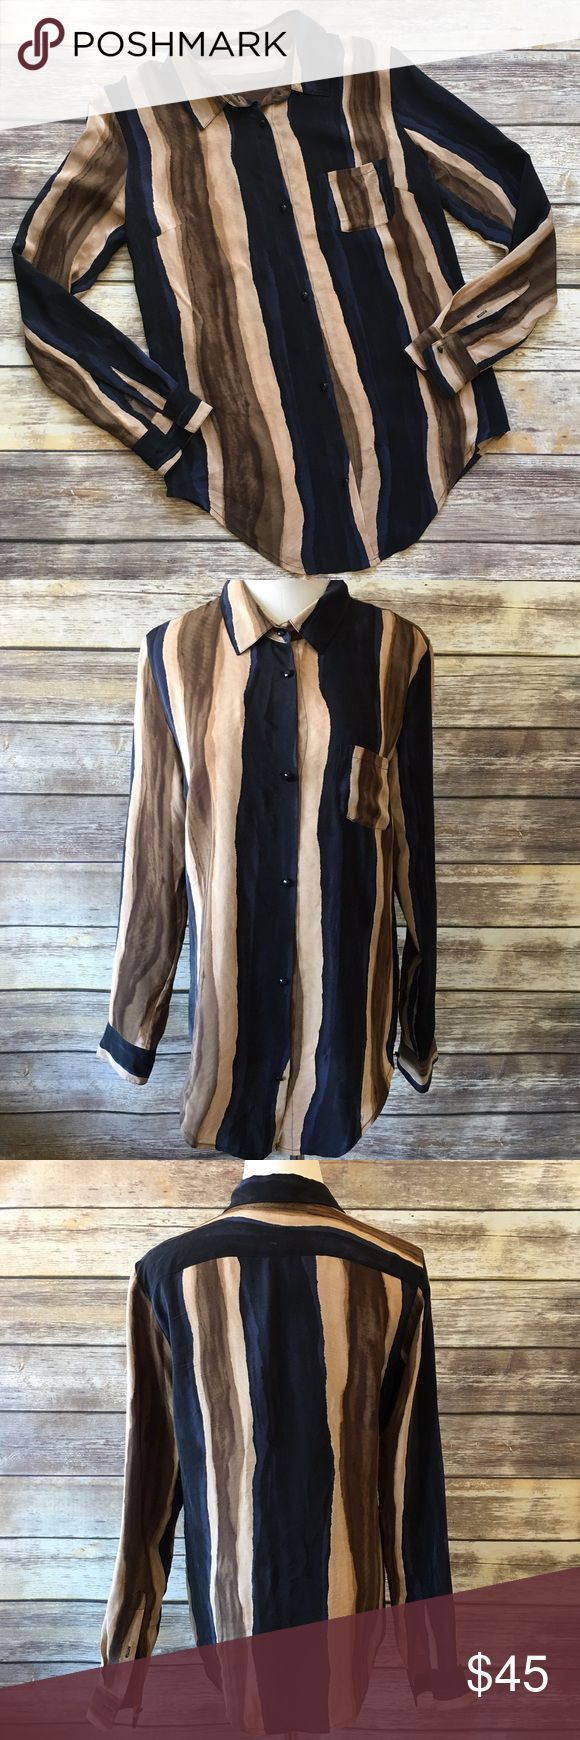 """Rebecca Minkoff Silk Blouse Rebecca Minkoff silk Button Down Blouse. Size 4. Measures from pit to pit 19""""/ length 27"""". Made of 100% silk. There is a little snug on the front as shown in pic 4. Rebecca Minkoff Tops Blouses"""